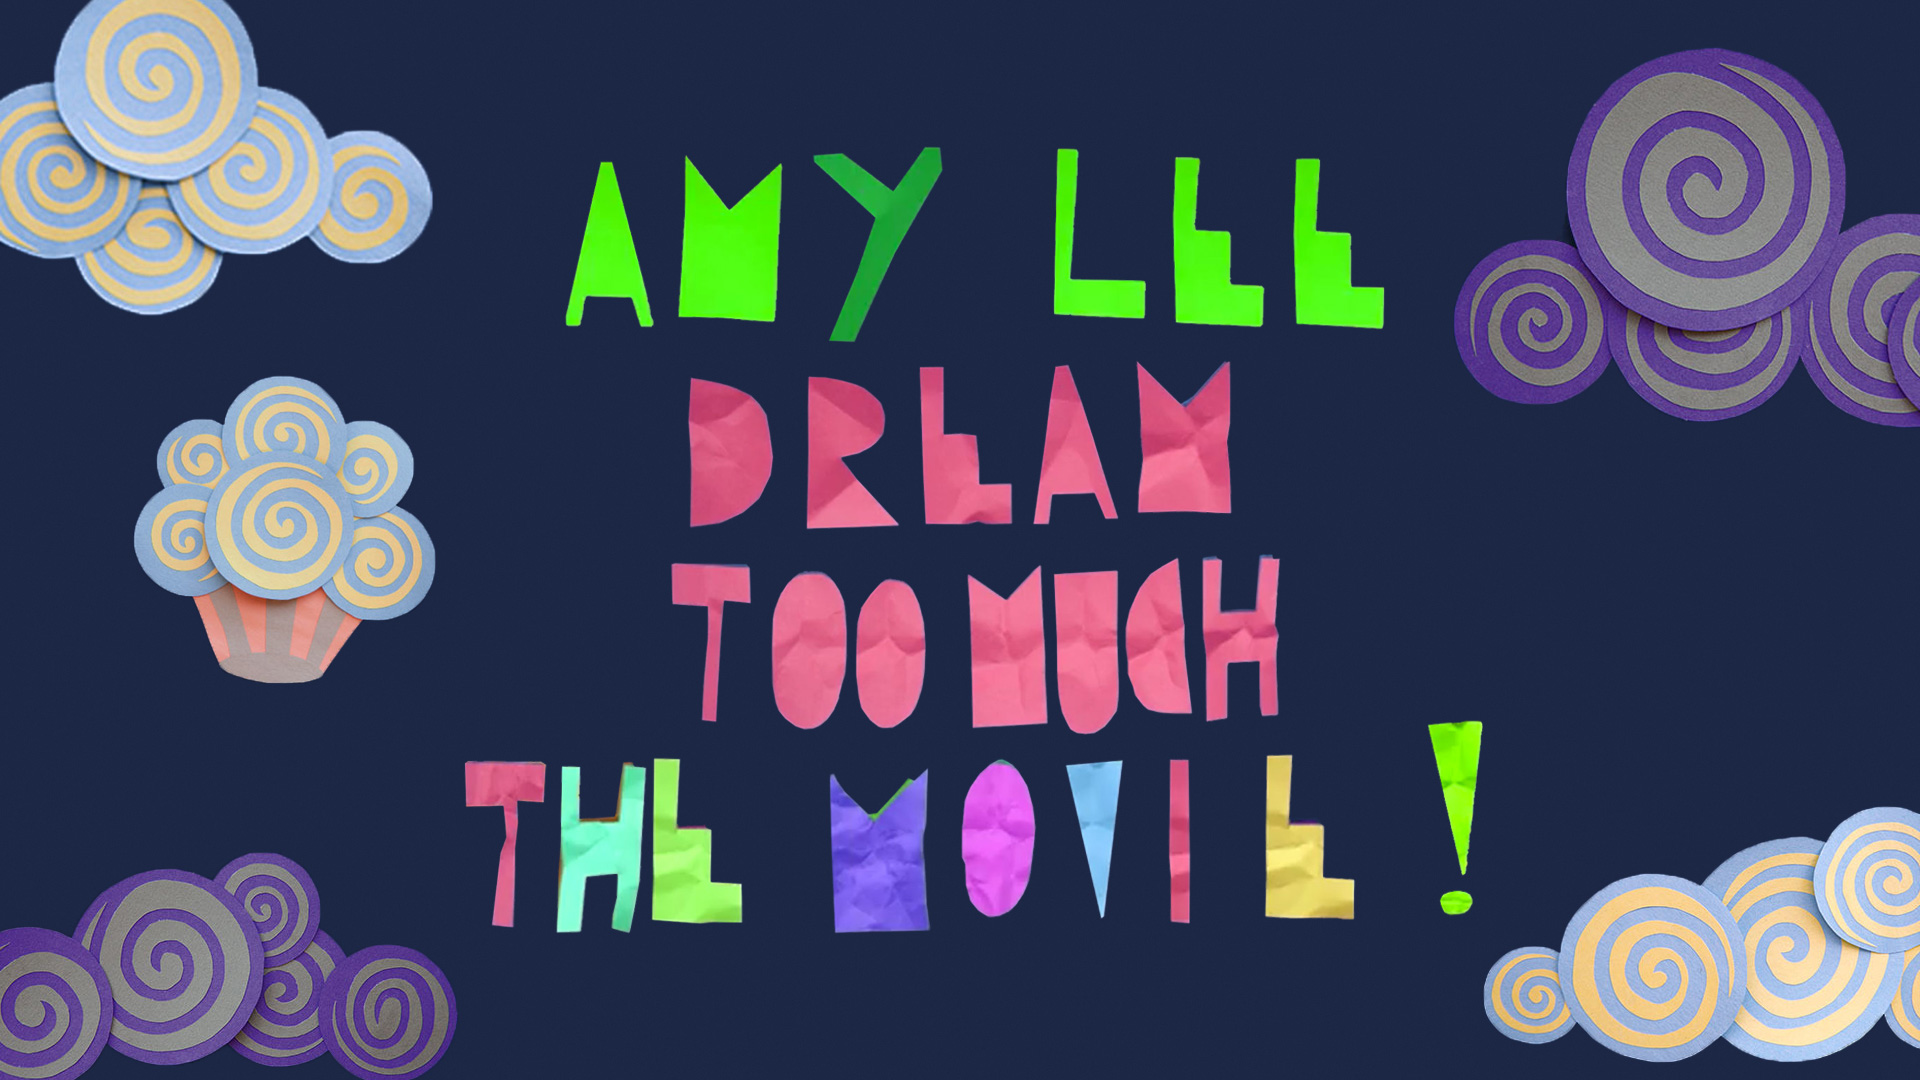 Amy Lee, Dream Too Much